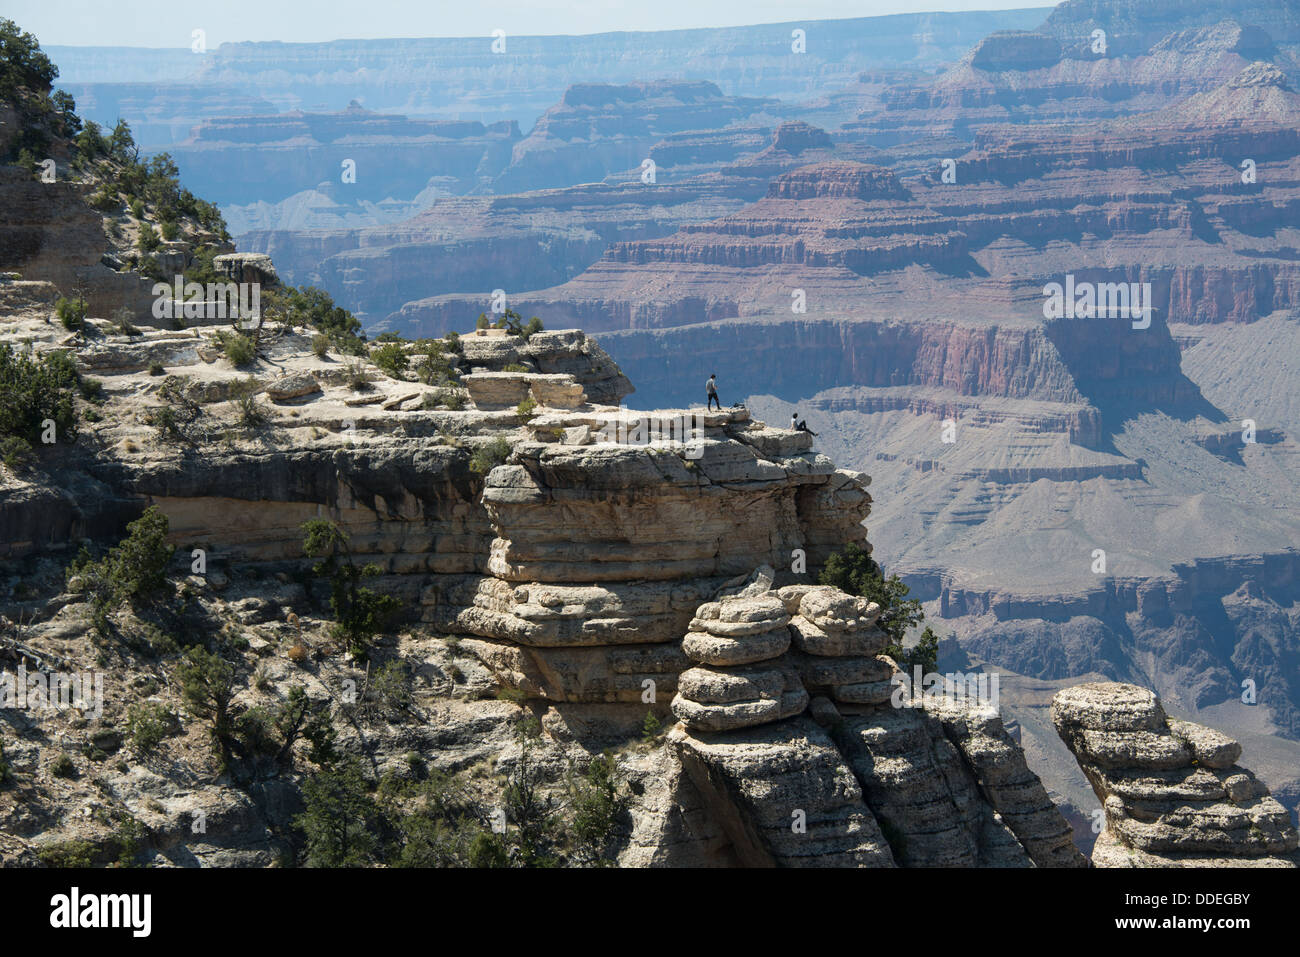 People on Cliff in Grand Canyon - Stock Image